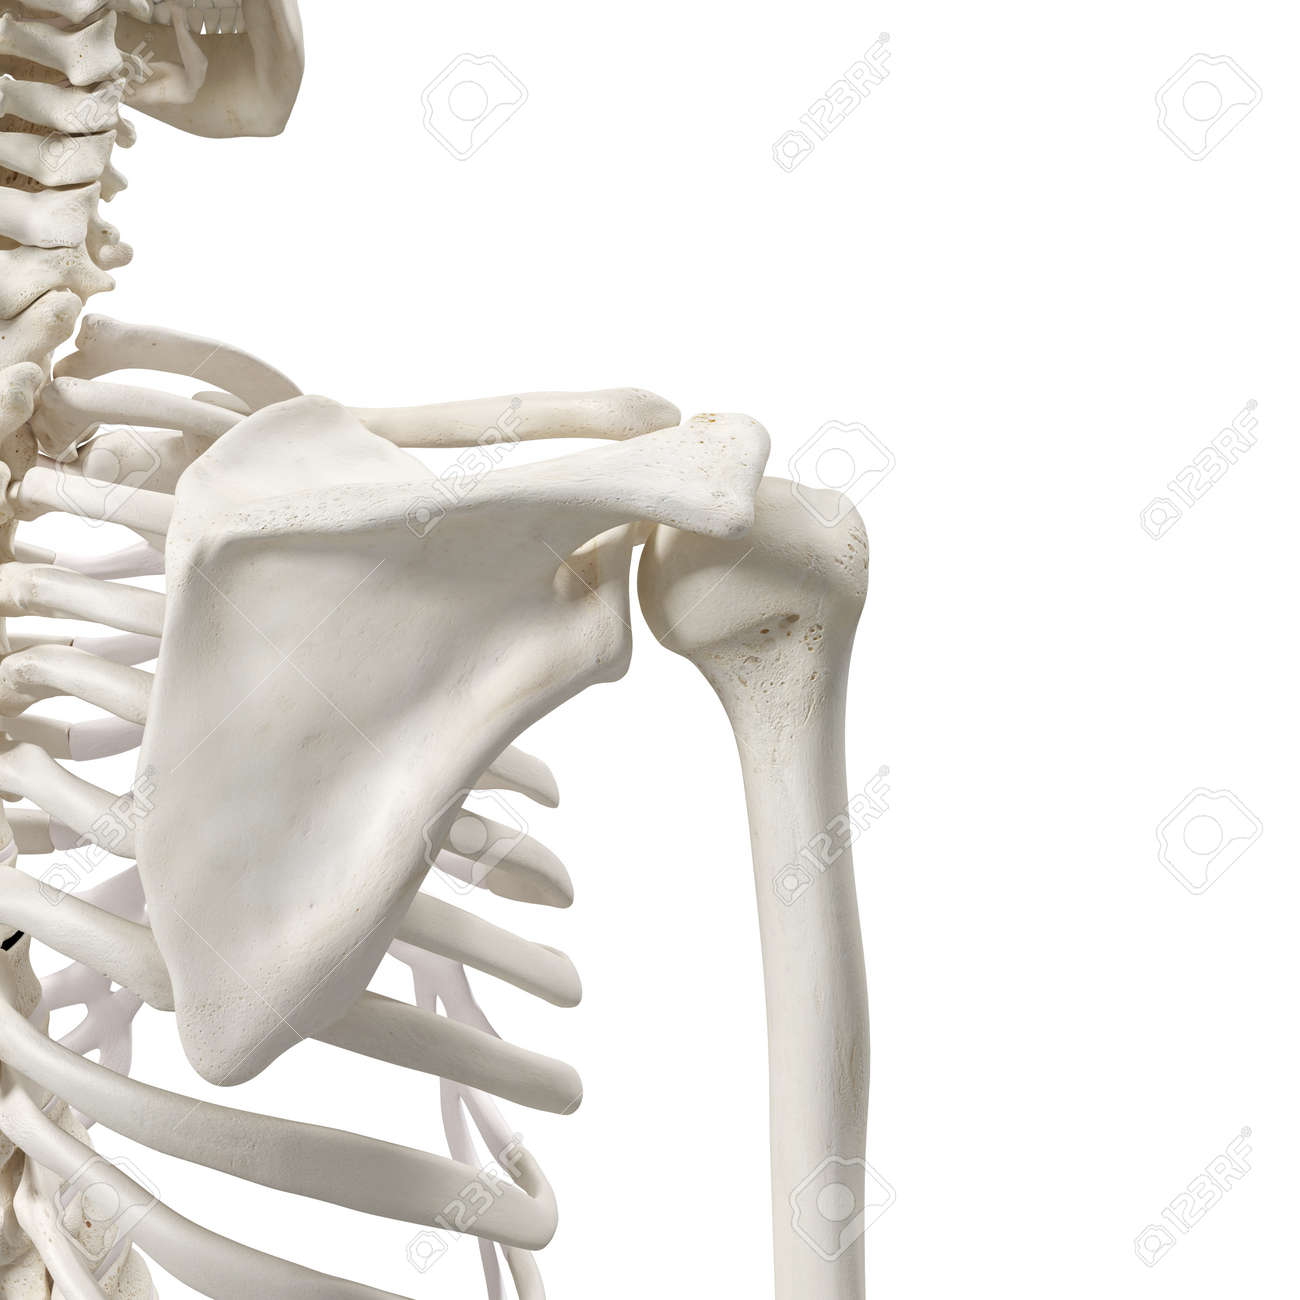 Medically Accurate 3d Rendering Of The Shoulder Bones Stock Photo